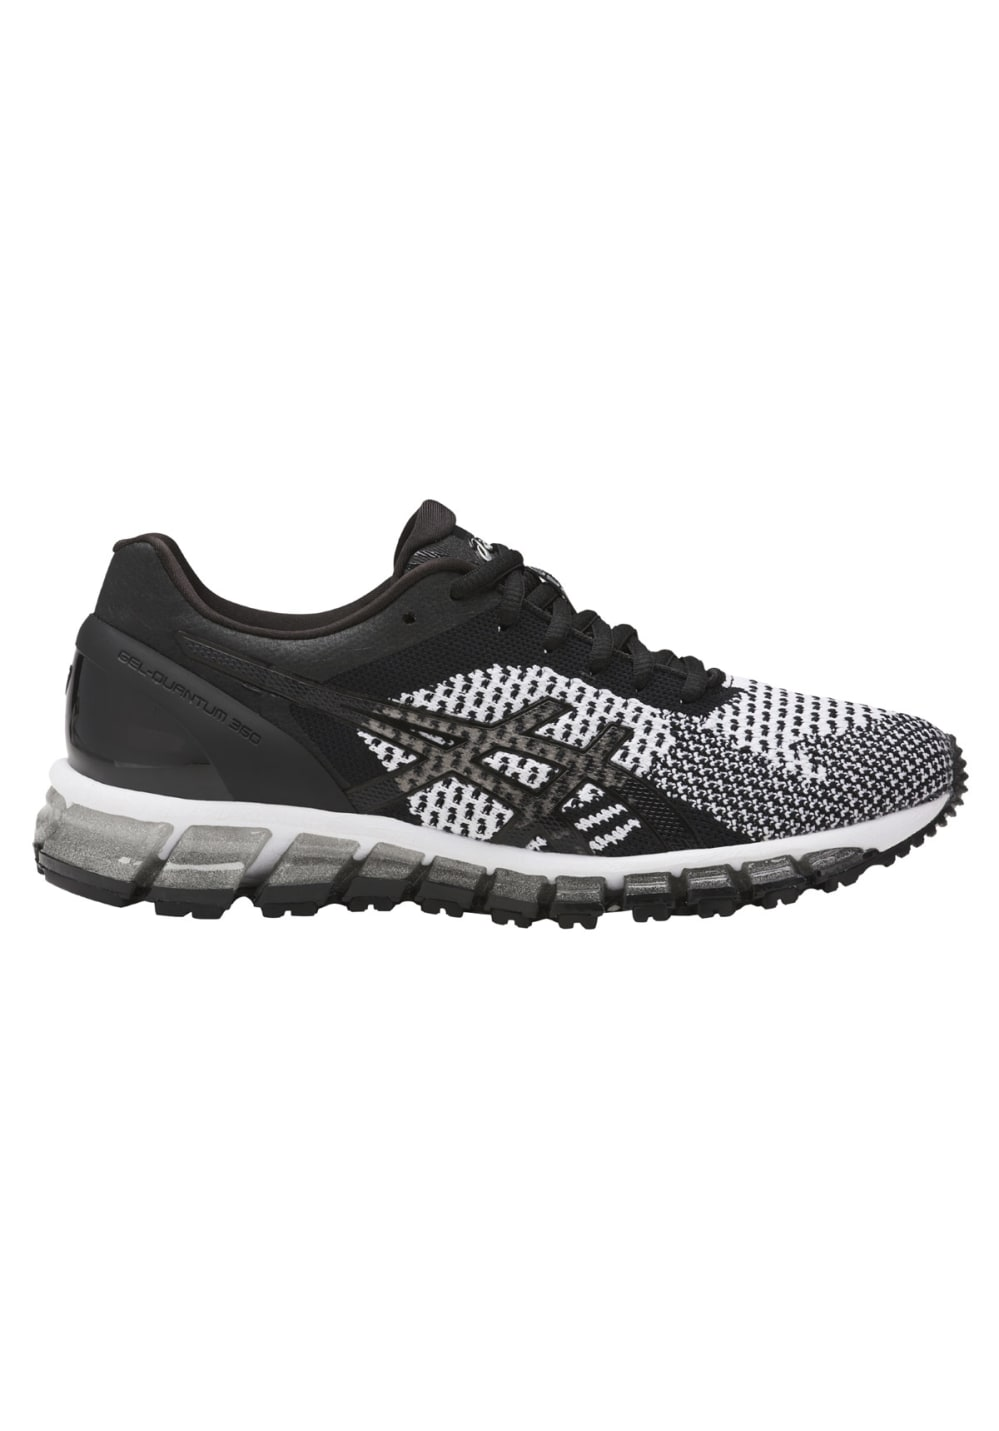 the latest 68a5b 02398 Next. New. ASICS. GEL-Quantum 360 Knit - Chaussures running pour Femme